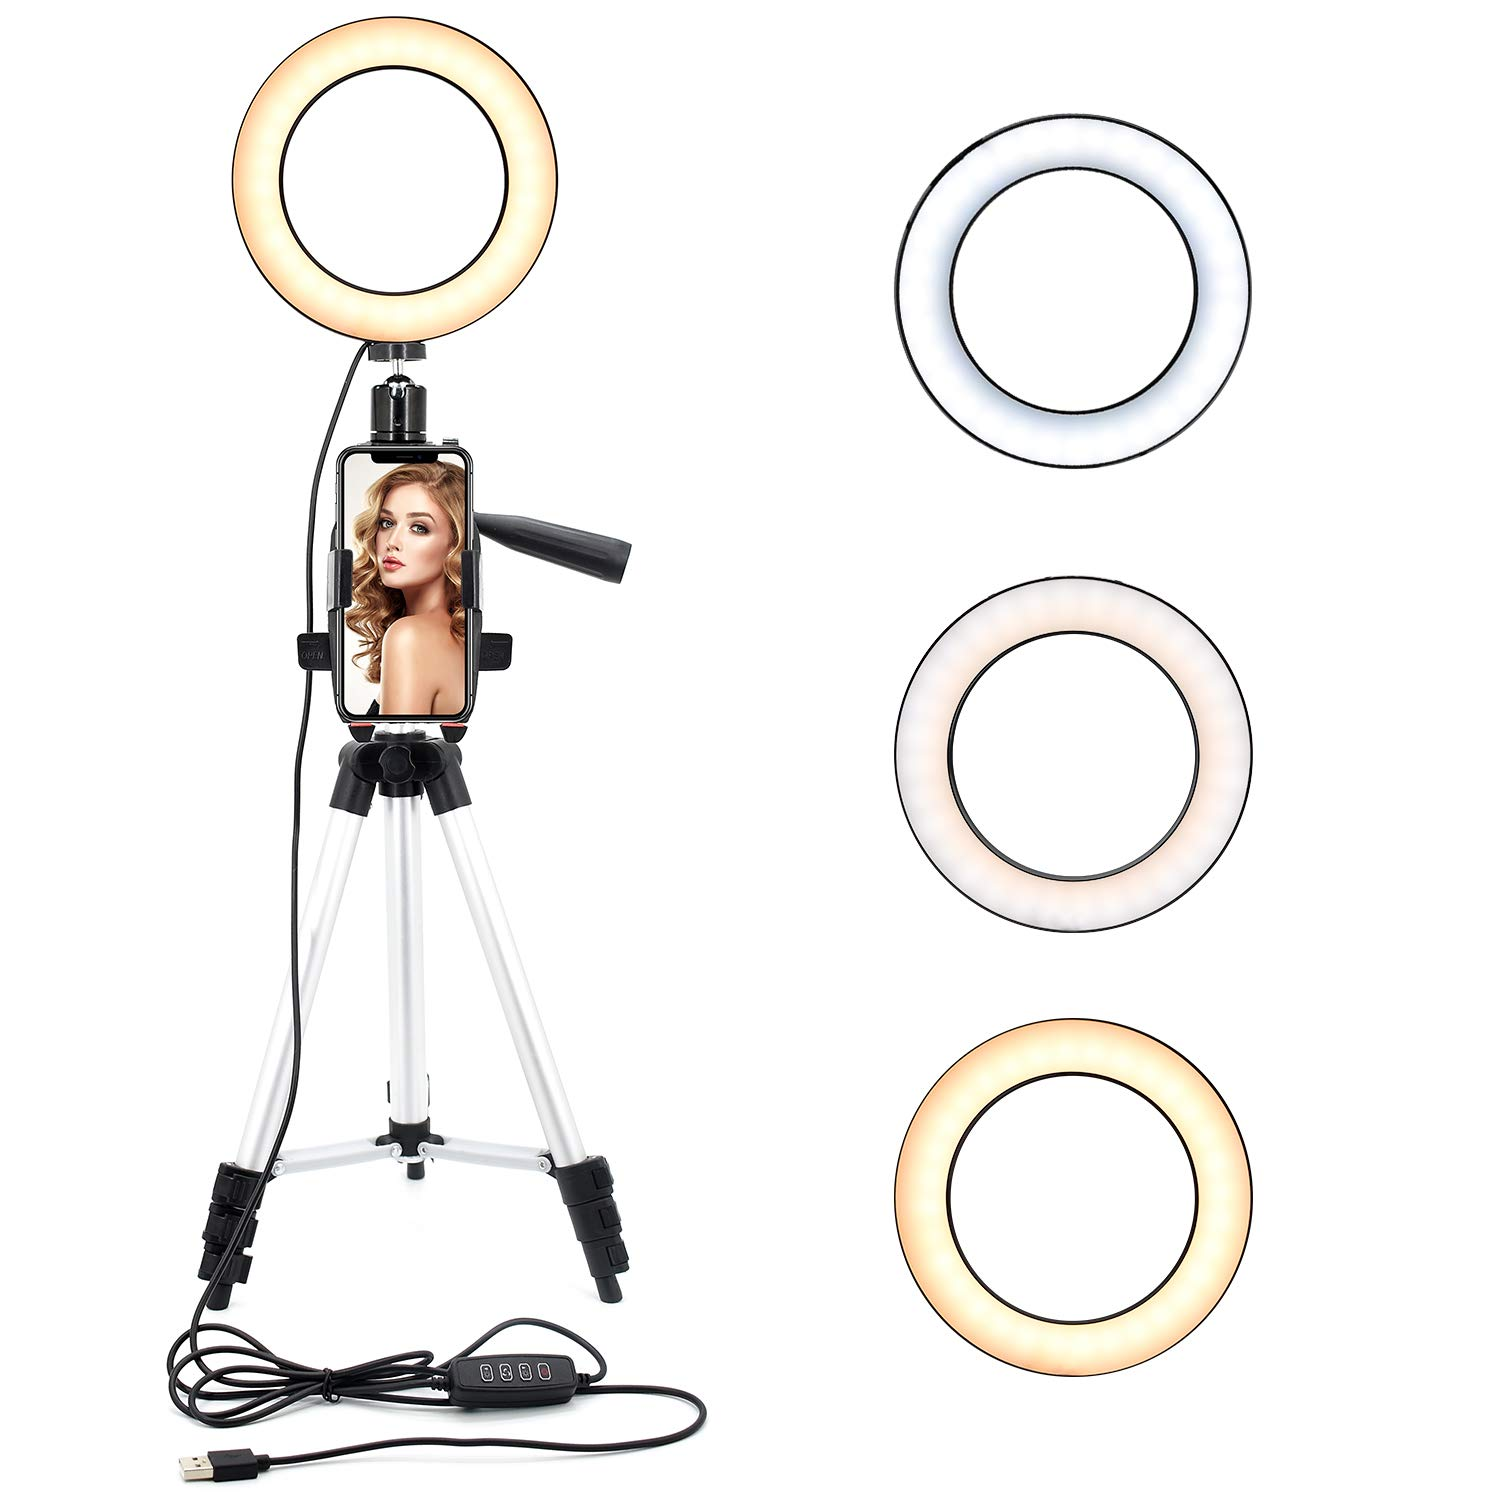 ASAKUKI 6.3'' Ring Light with Tripod Stand and Phone Holder for Selfie Pictures, YouTube Videos, Makeup Application, Streaming LED Ring Light with 11 Brightness Levels &3 Lighting Modes